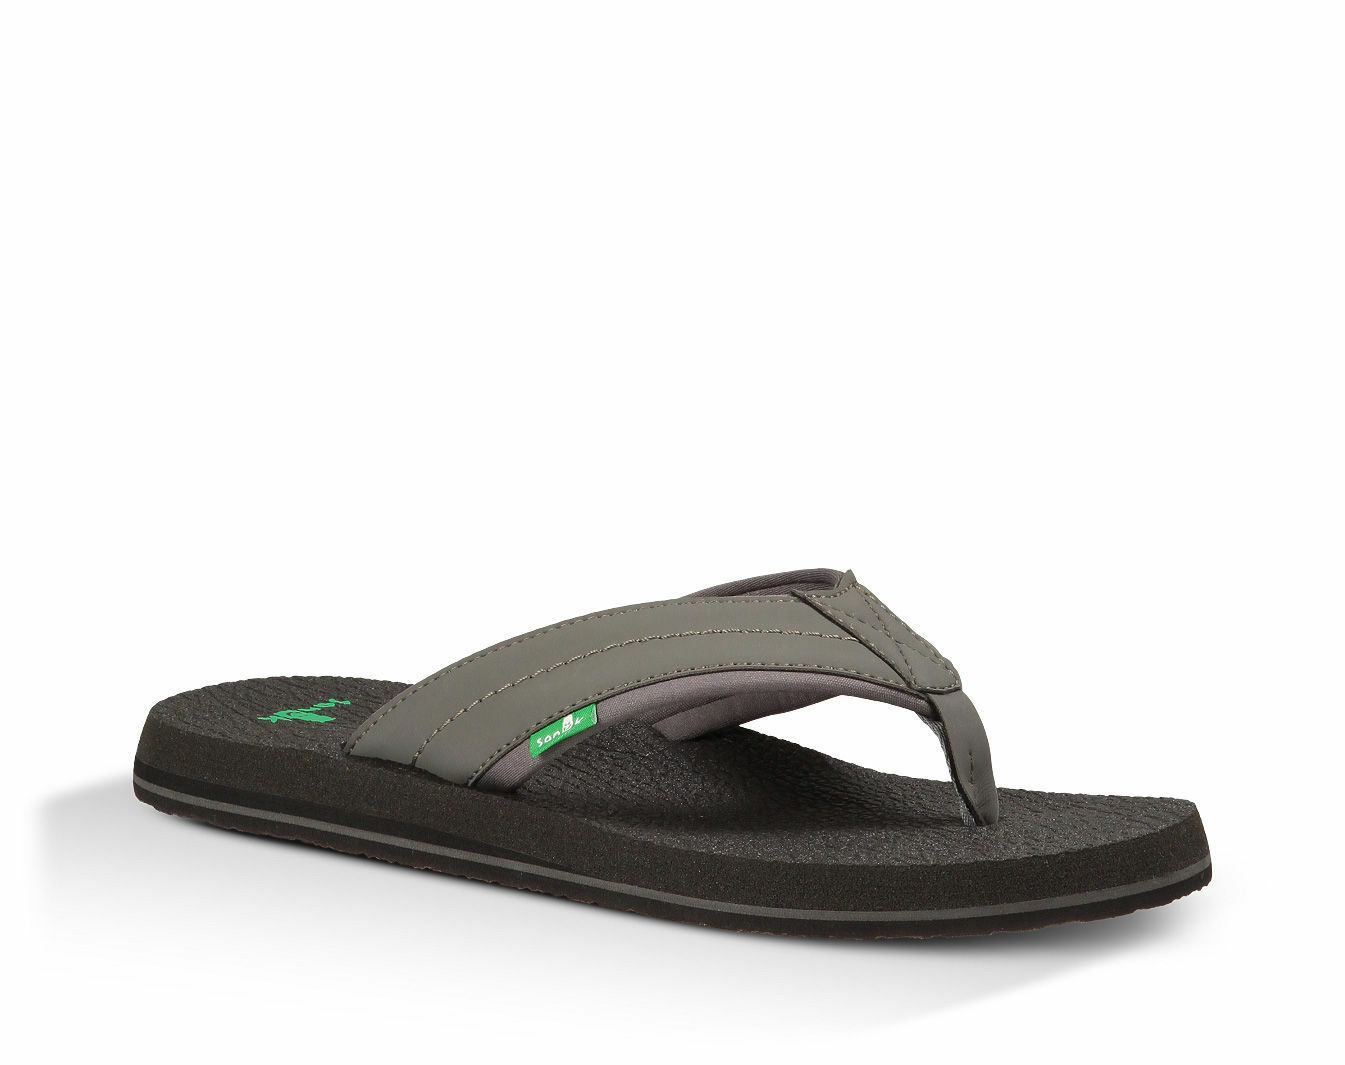 Sanuk Beer Cozy 2 Men's Flip Flop Sandal - Charcoal - SMS10868